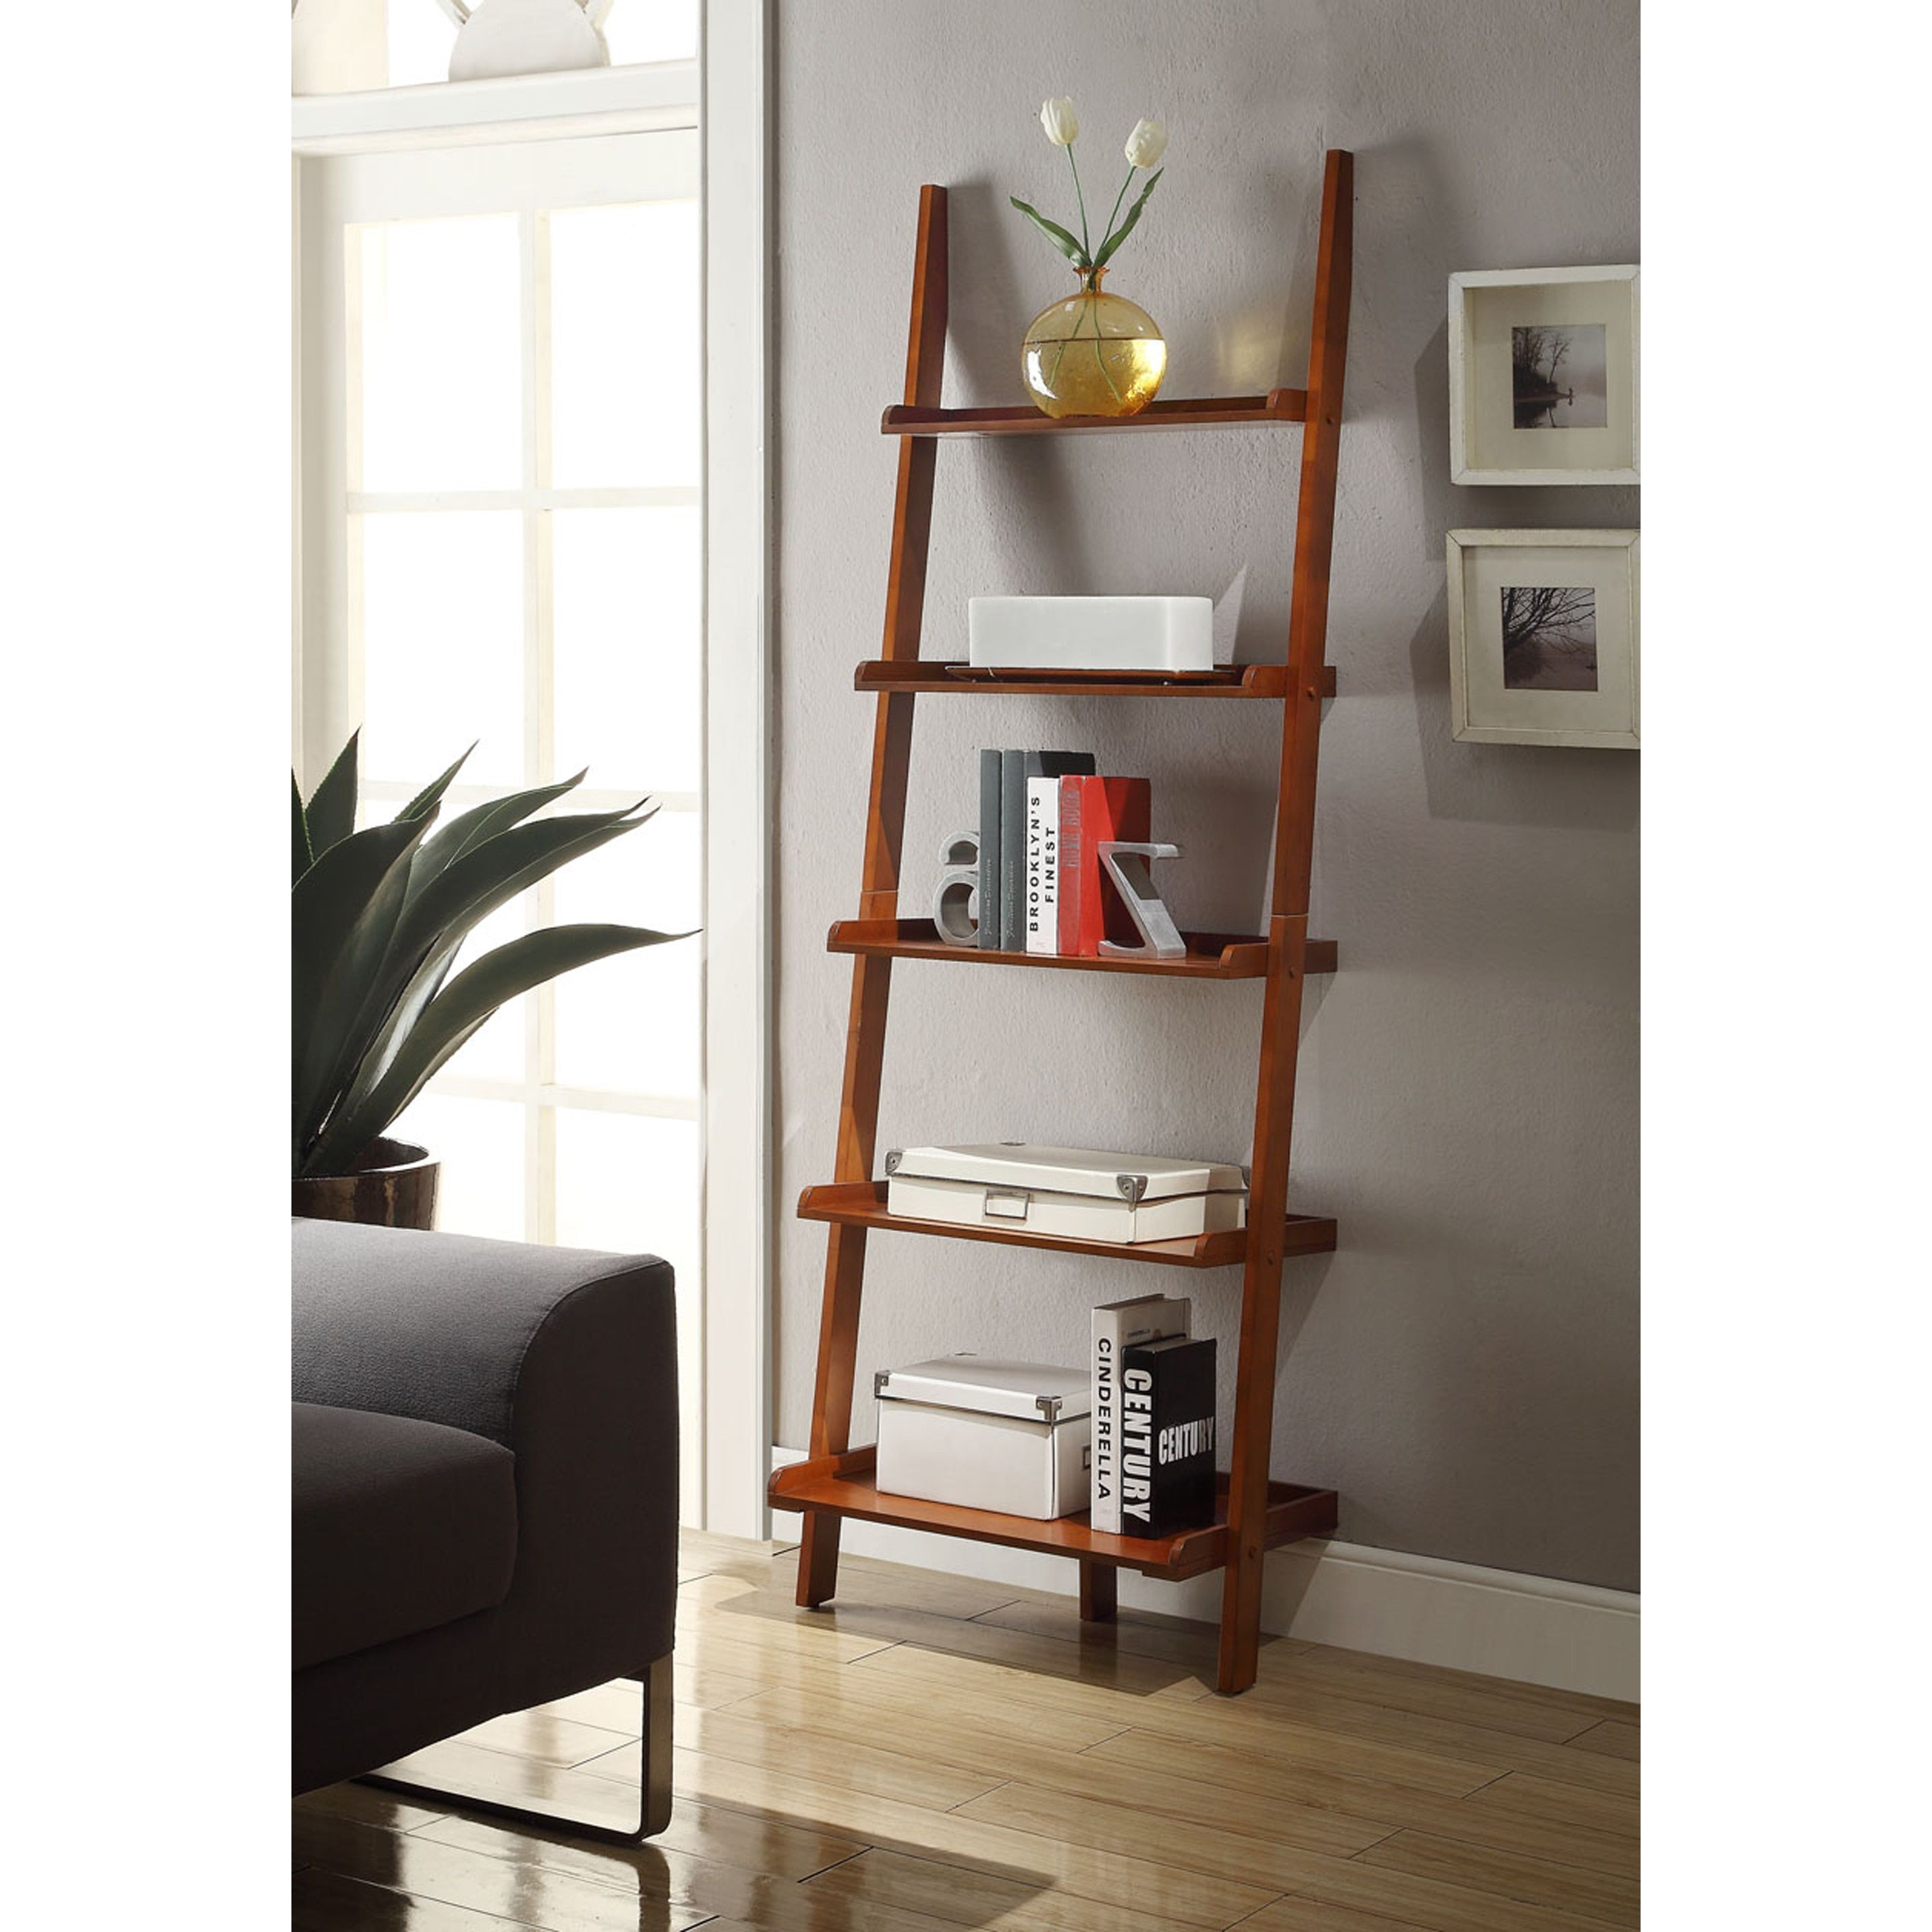 Convenience concepts american heritage bookshelf ladder cherry red